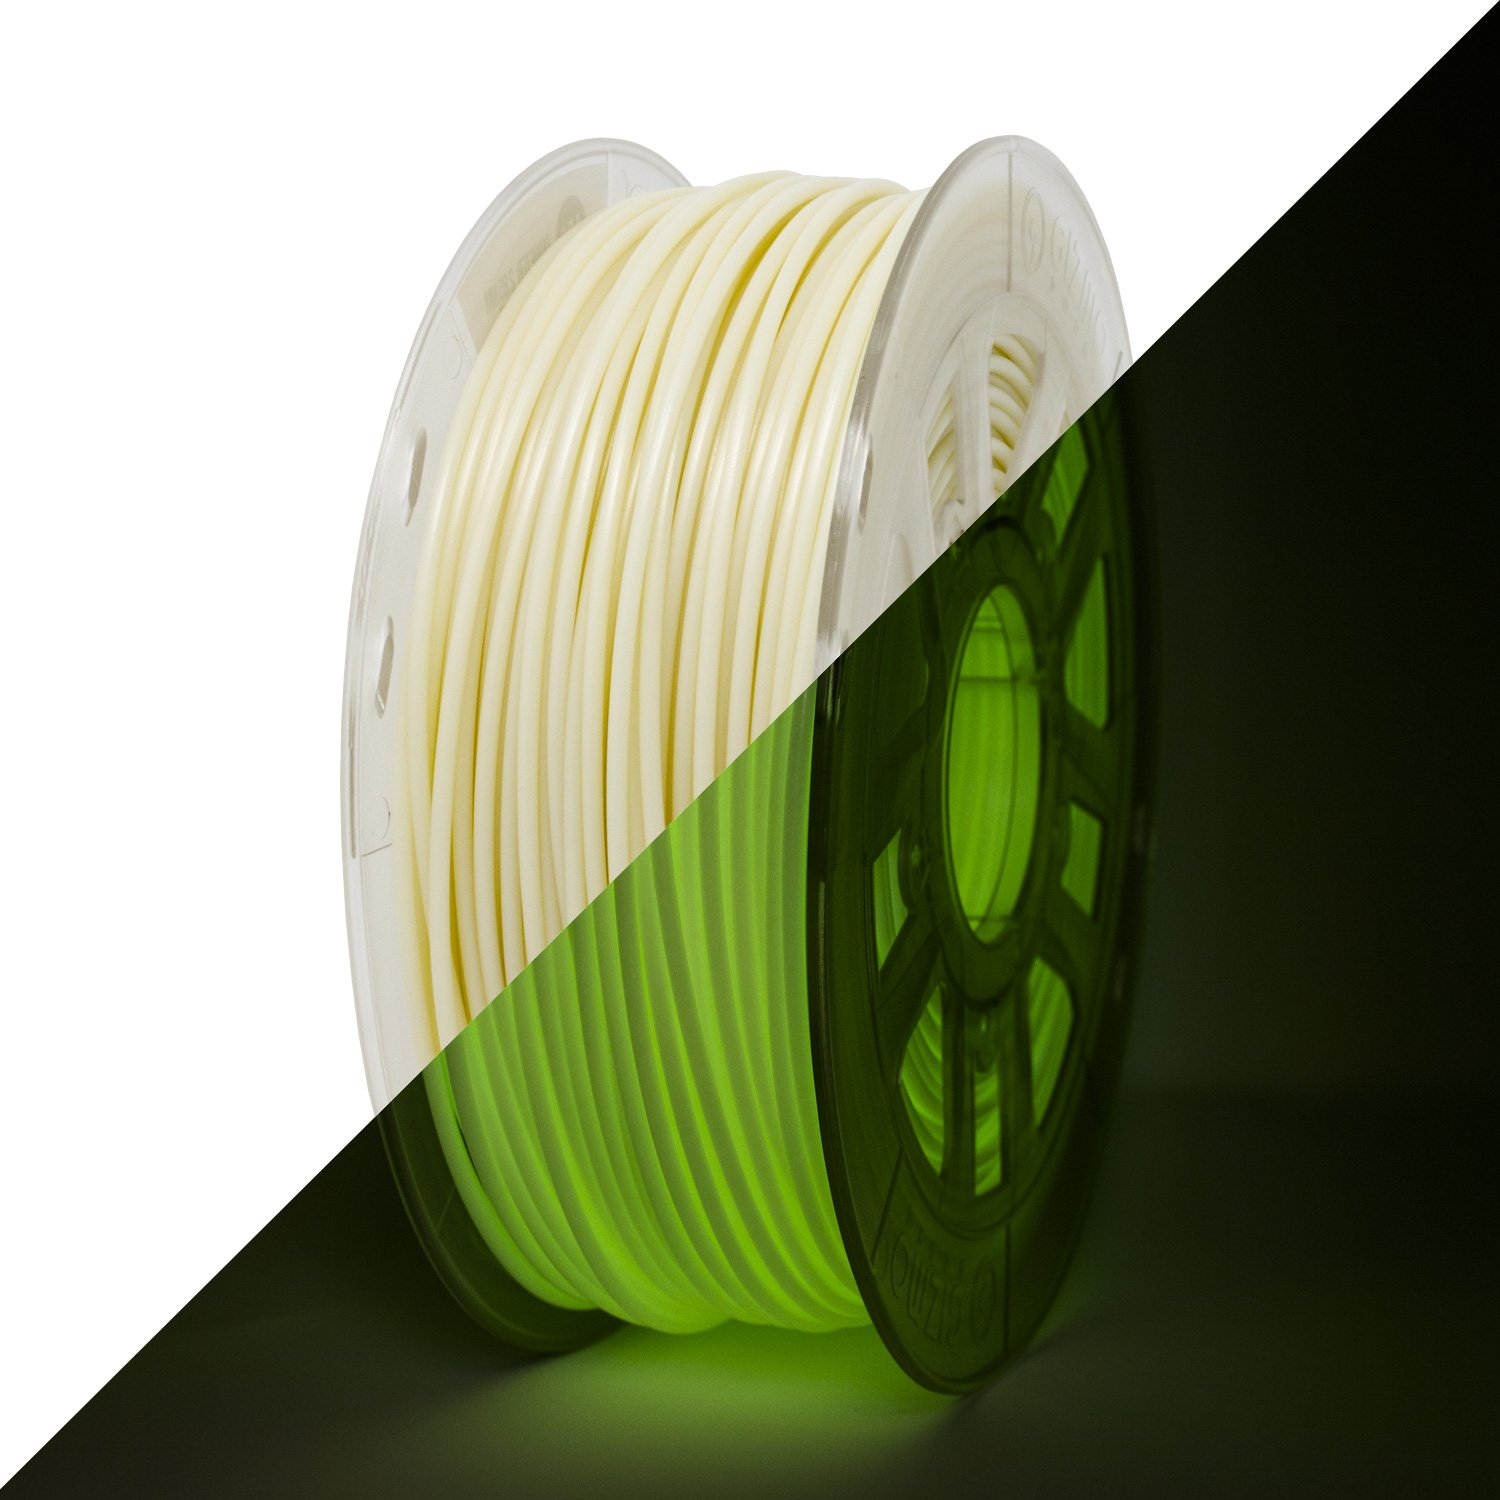 Gizmo Dorks 3mm (2.85mm) ABS Filament 1kg / 2.2lb for 3D Printers, Glow in The Dark